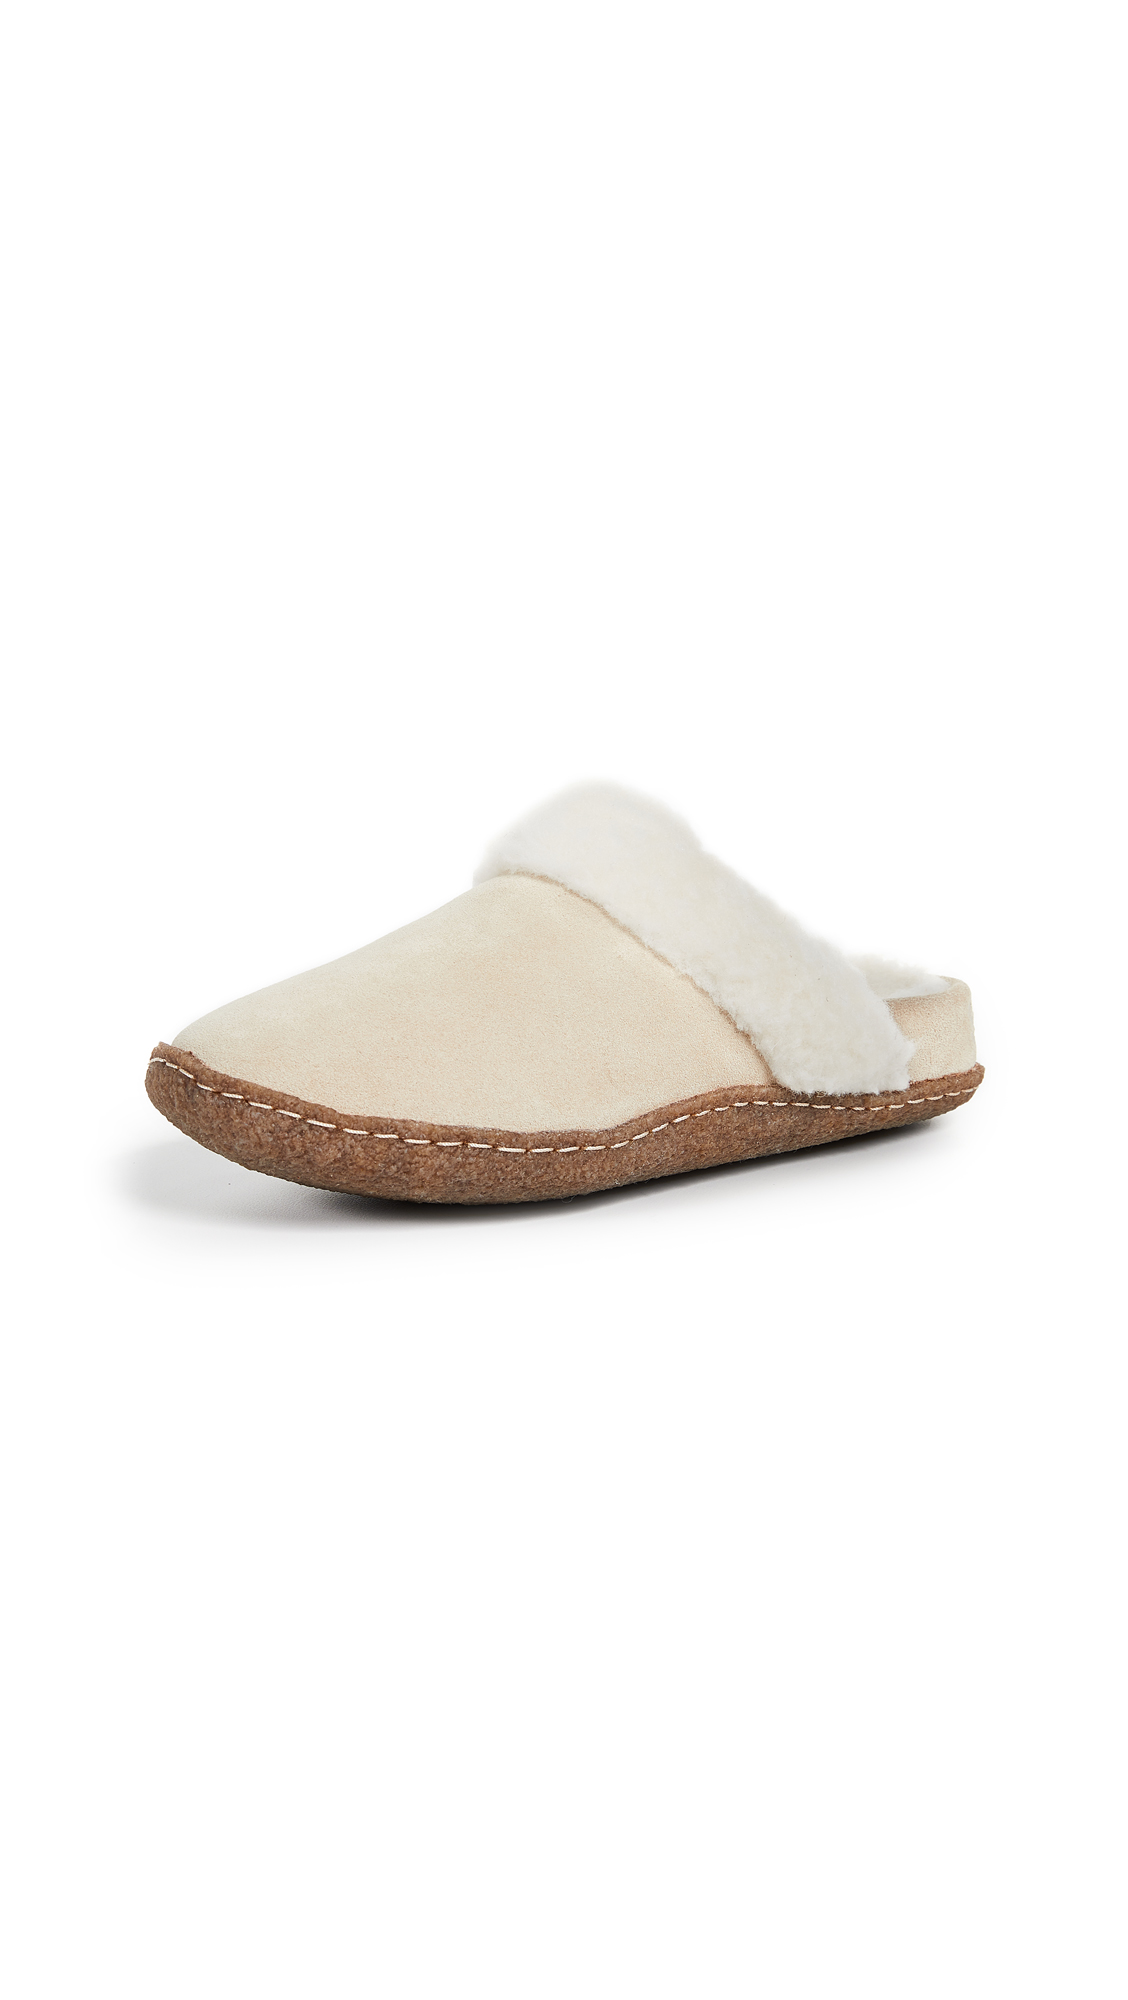 Sorel Nakiska Slide II Slippers - British Tan/Natural